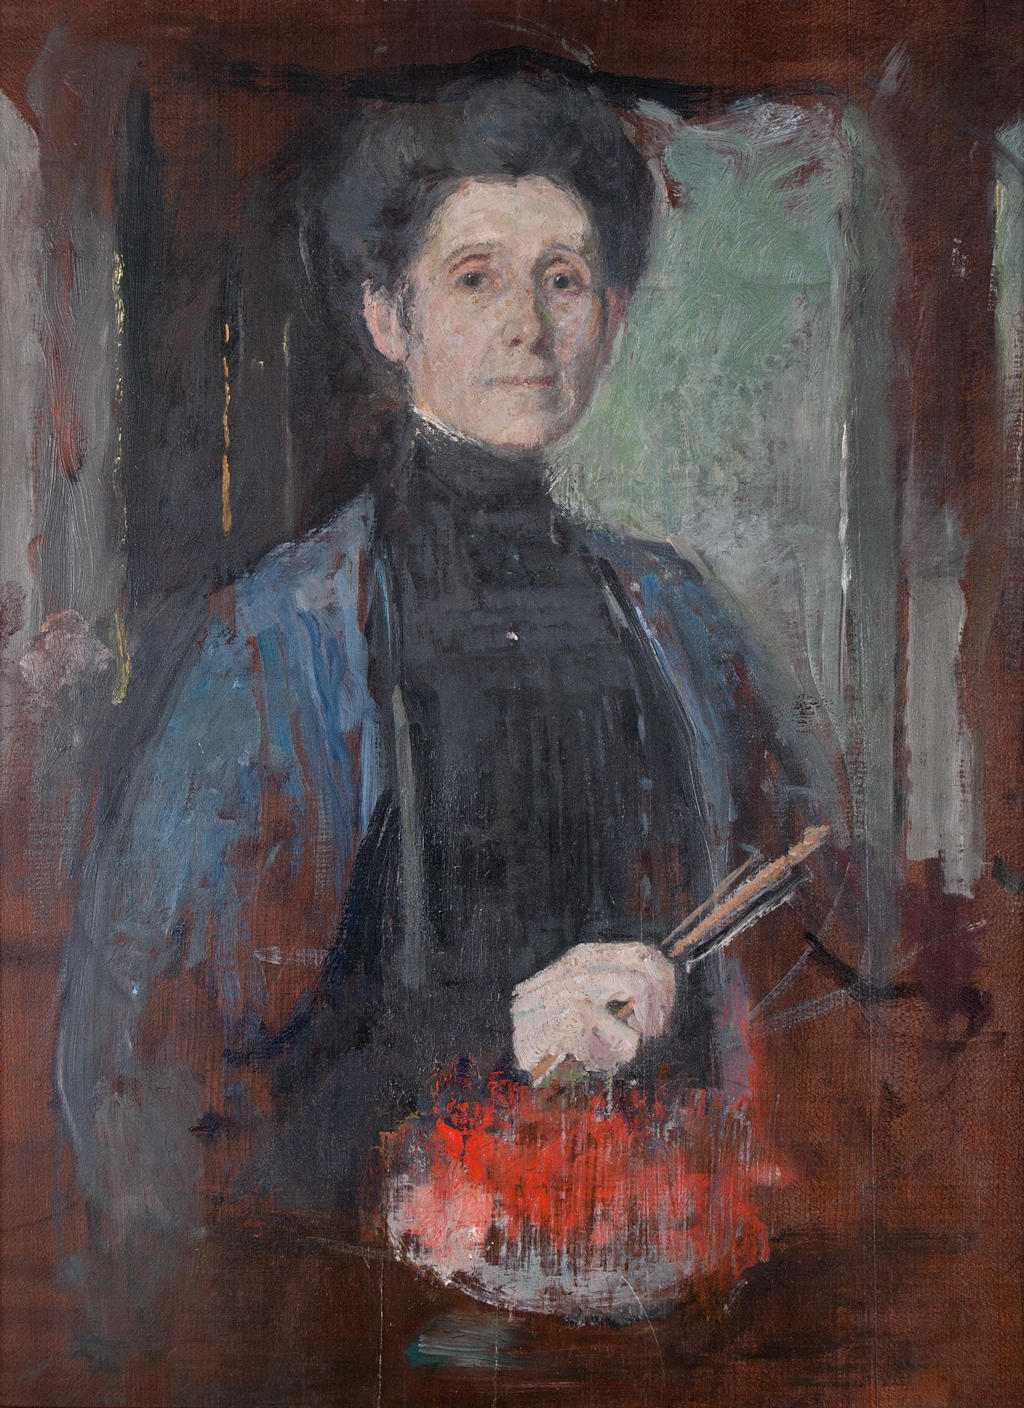 Olga Boznańska, Self-portrait with brush and flowers | c. 1906, oil on panel, Museum of the City of Lodz, Poland | © Krzysztof Musial Collection